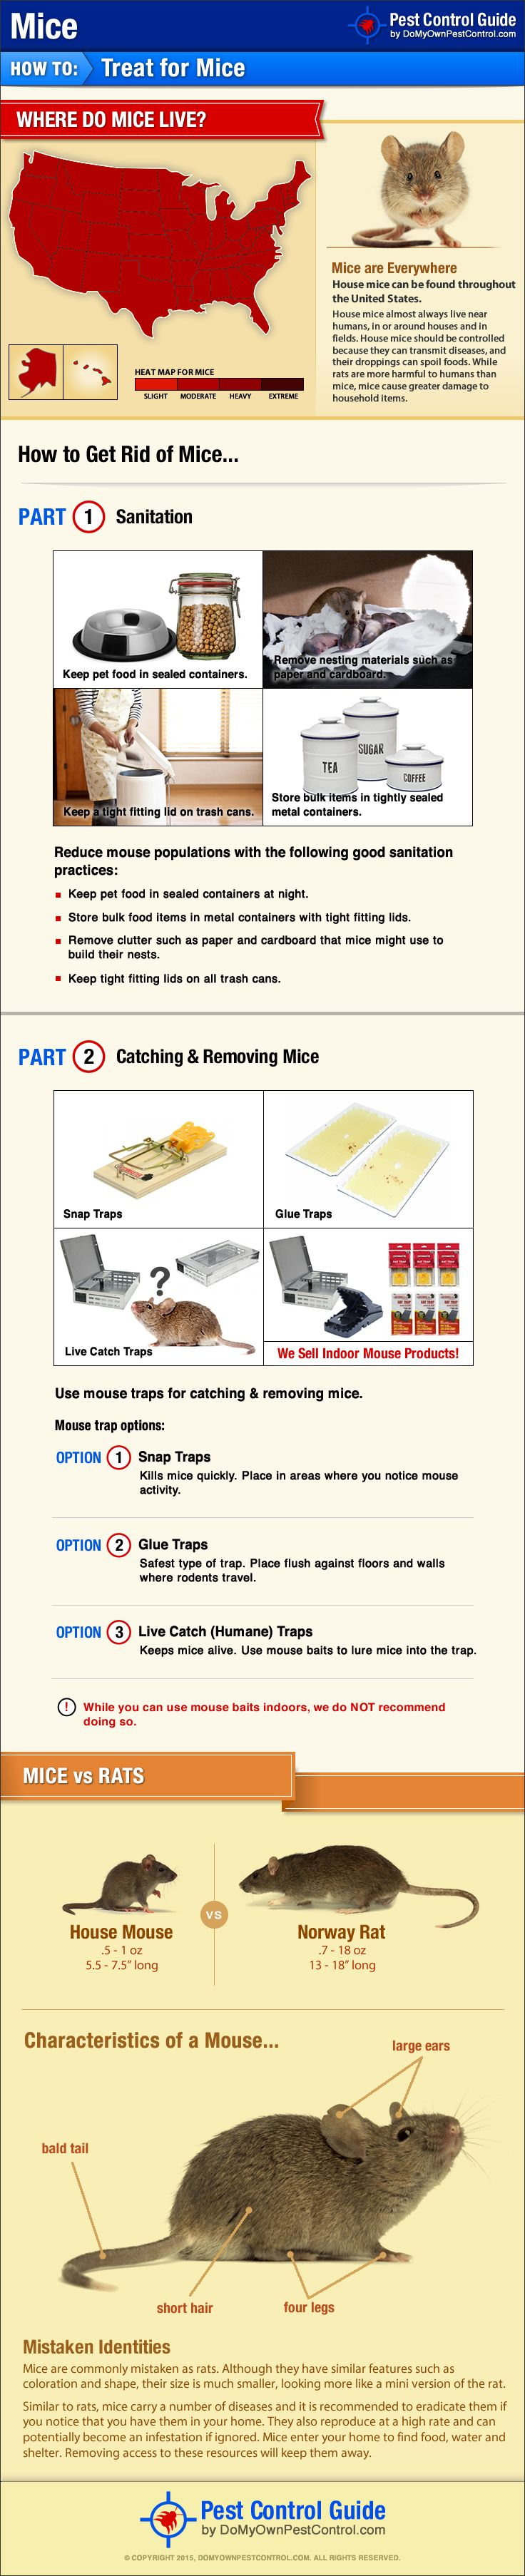 How to Get Rid of & Kill Mice - Mouse Control & Treatment Guide